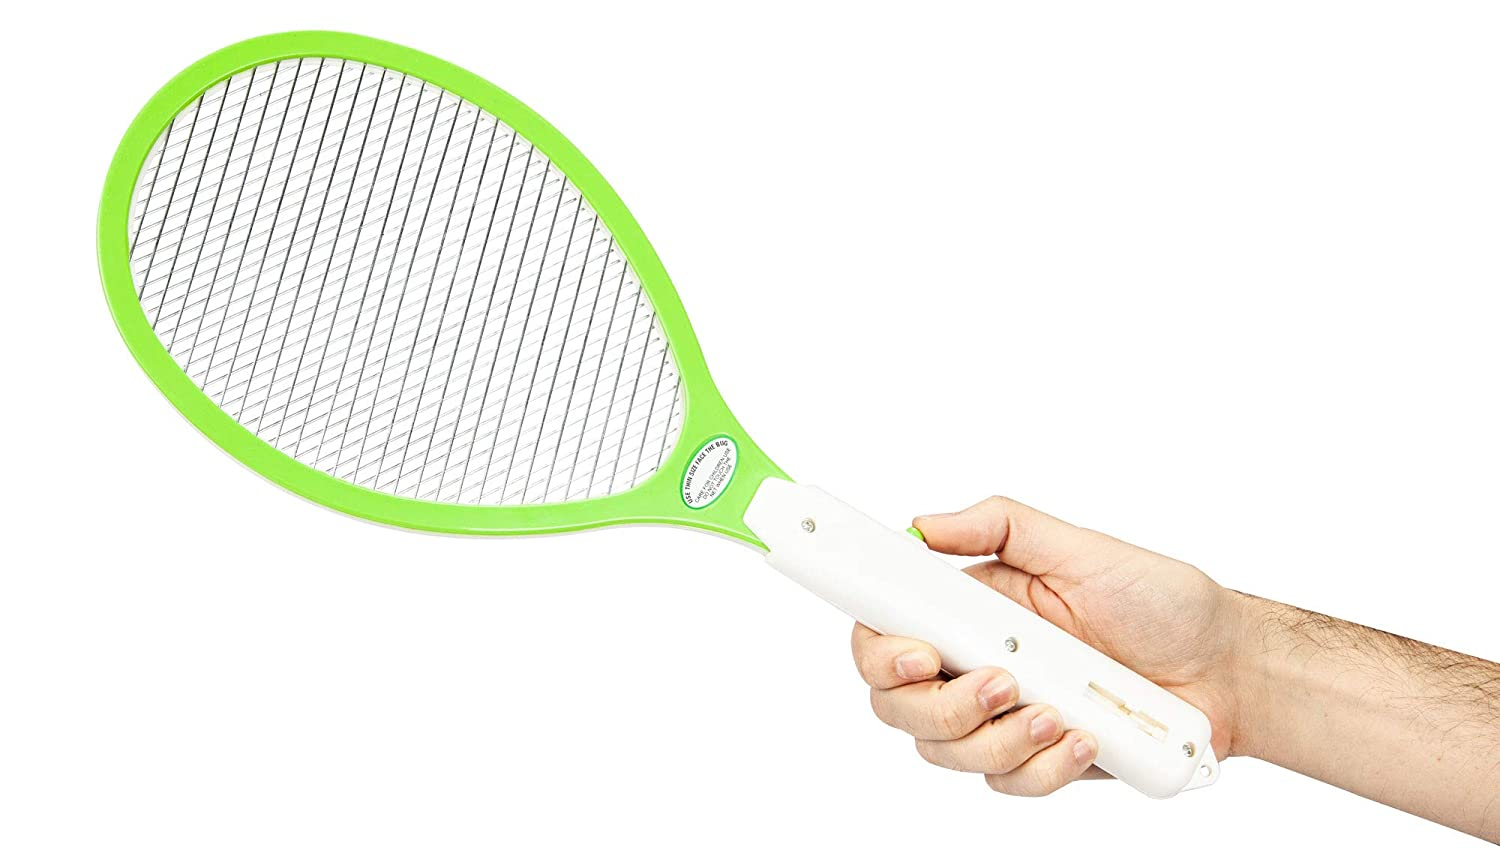 Large Electric Bug Zapper, Electric Fly Swatter with On/Off Switch, Eco-Friendly and Non-Toxic Pest Control, Hand Held Bug Zapper for Indoor and Outdoor Flies, Mosquito and Other Flying Pests